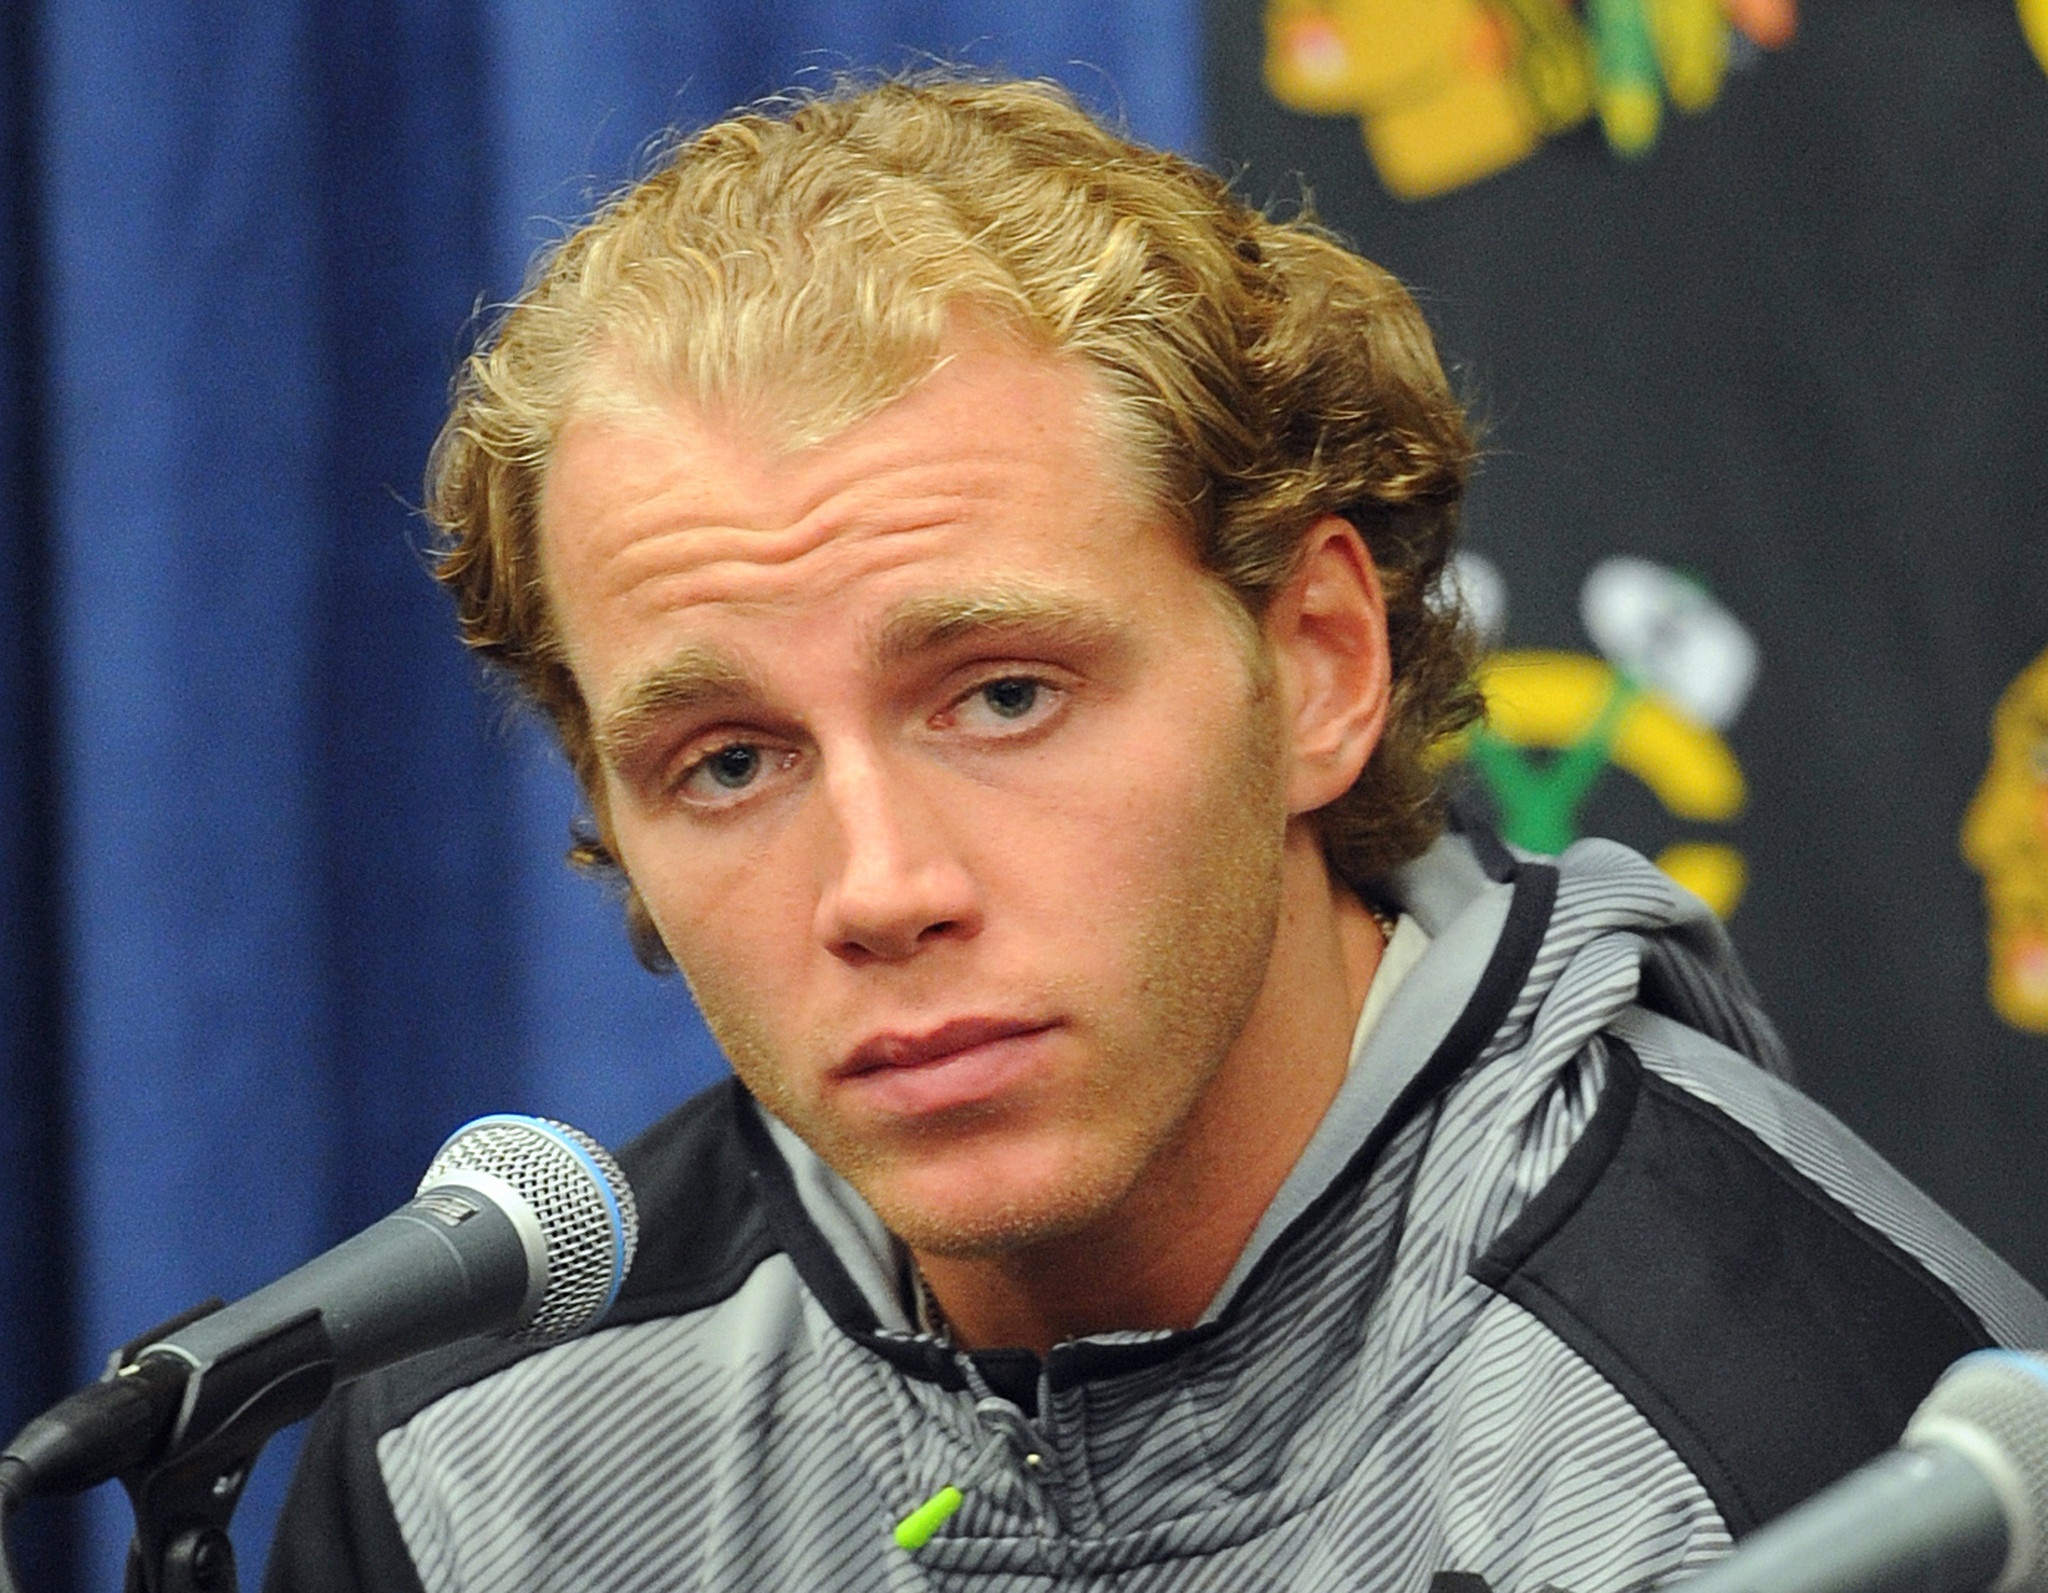 Attorney For Accuser In Patrick Kane Case Cites Evidence Tampering